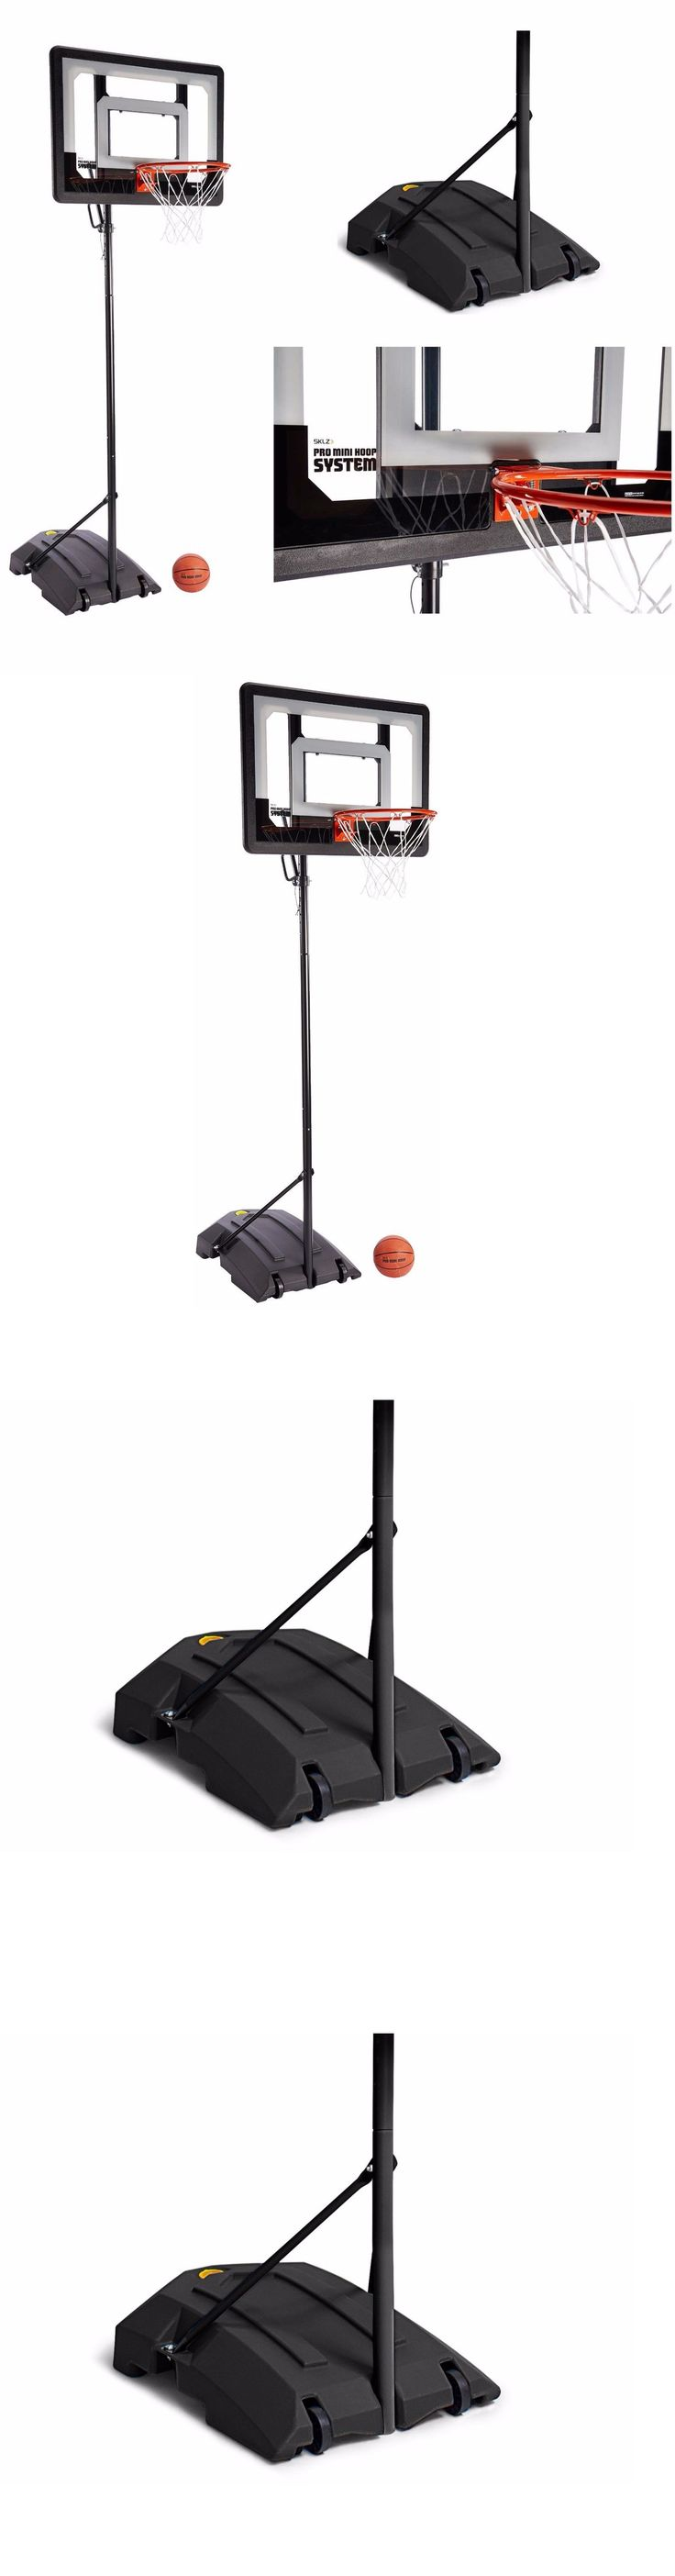 Backboard Systems 21196: Portable Basketball System Adjustable Backboard Hoop Goal Wheeled Net Court -> BUY IT NOW ONLY: $157.3 on eBay!